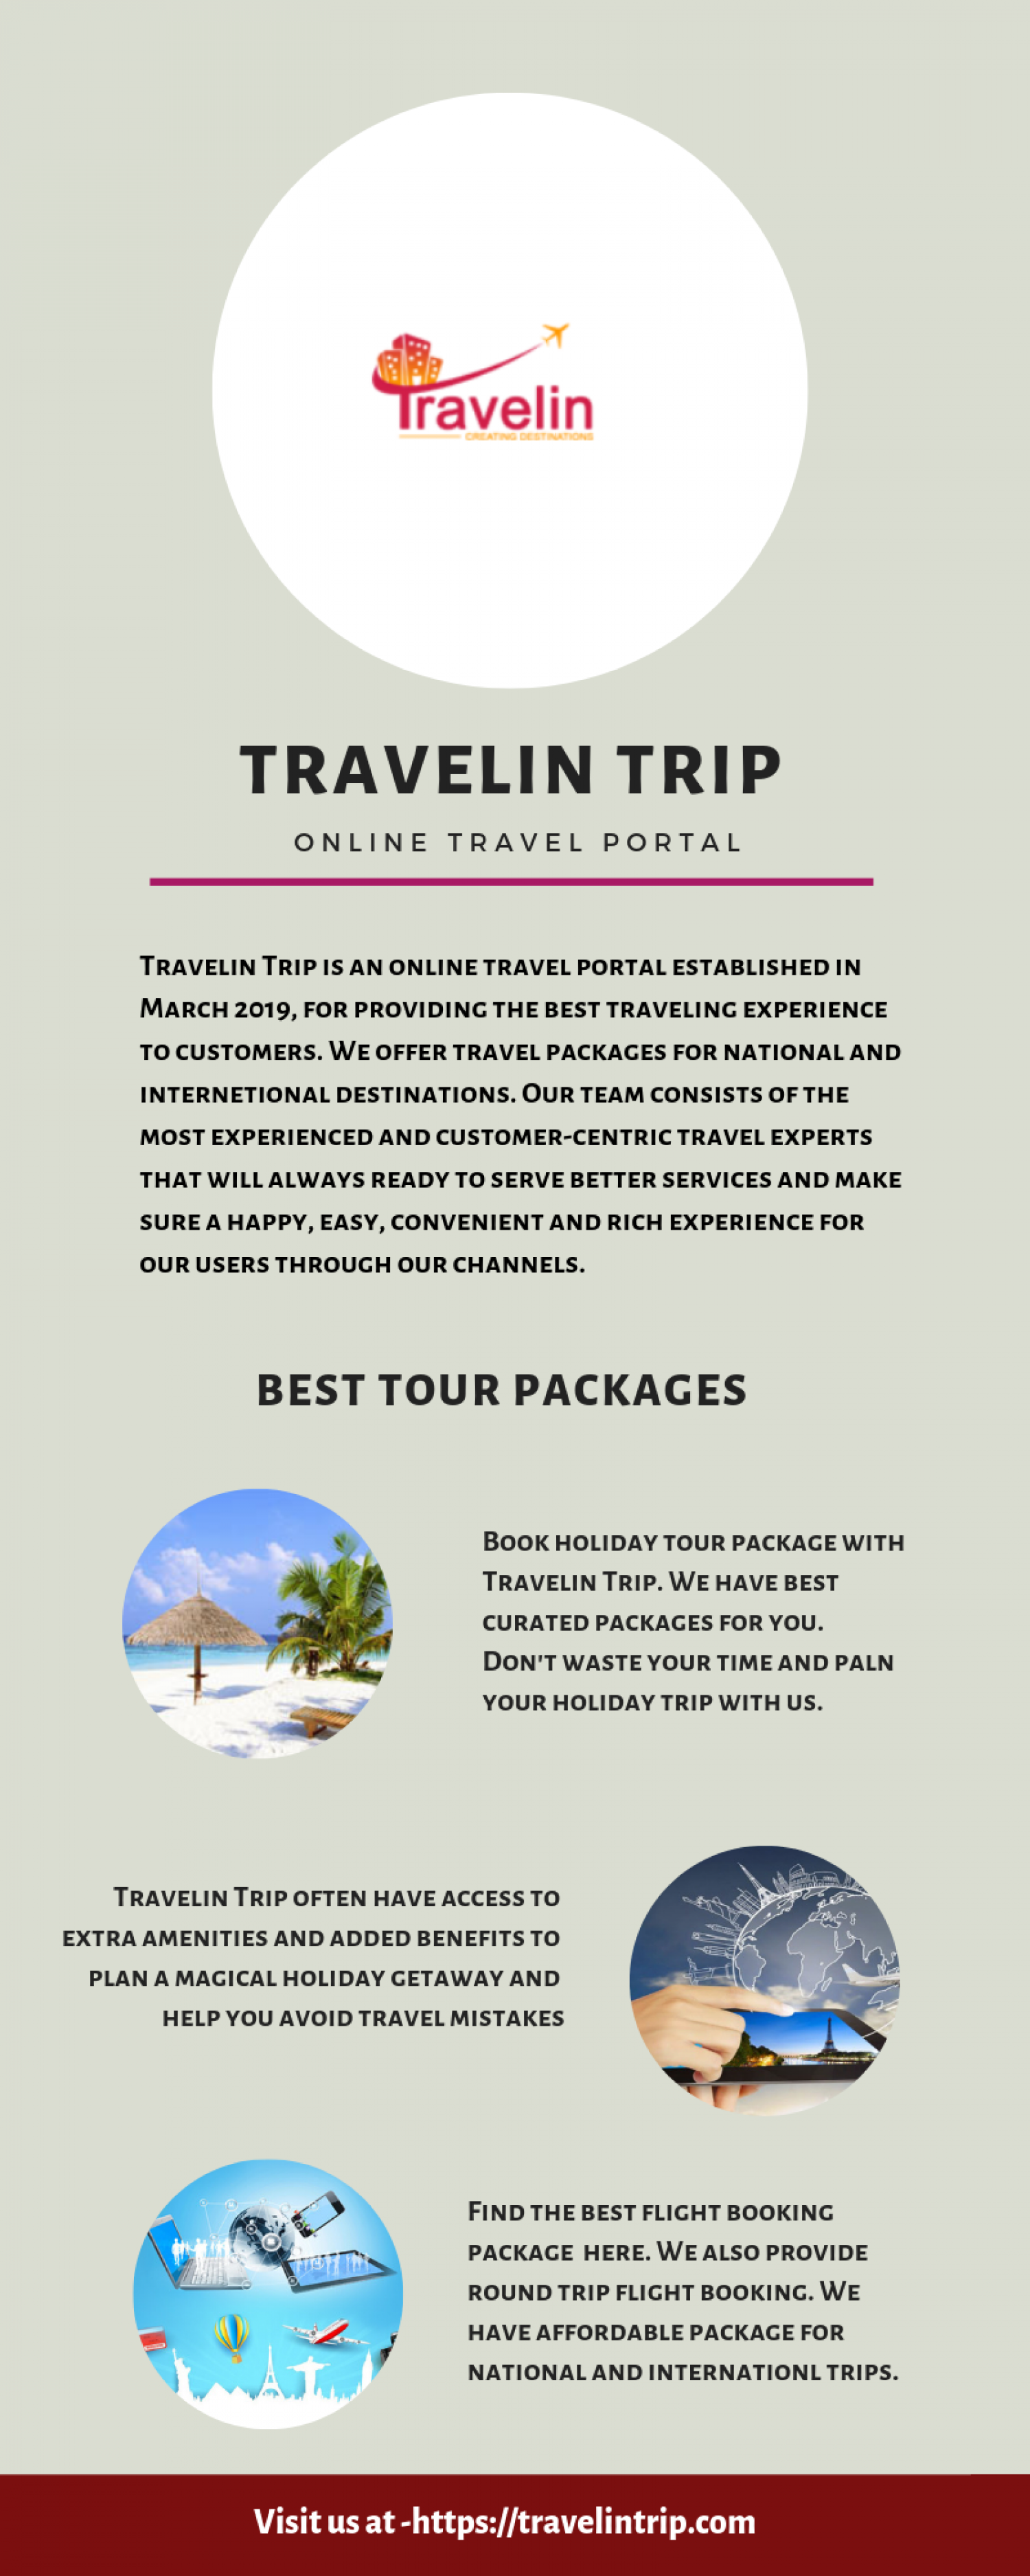 Travelin Trip - The Best Travel Portal Infographic